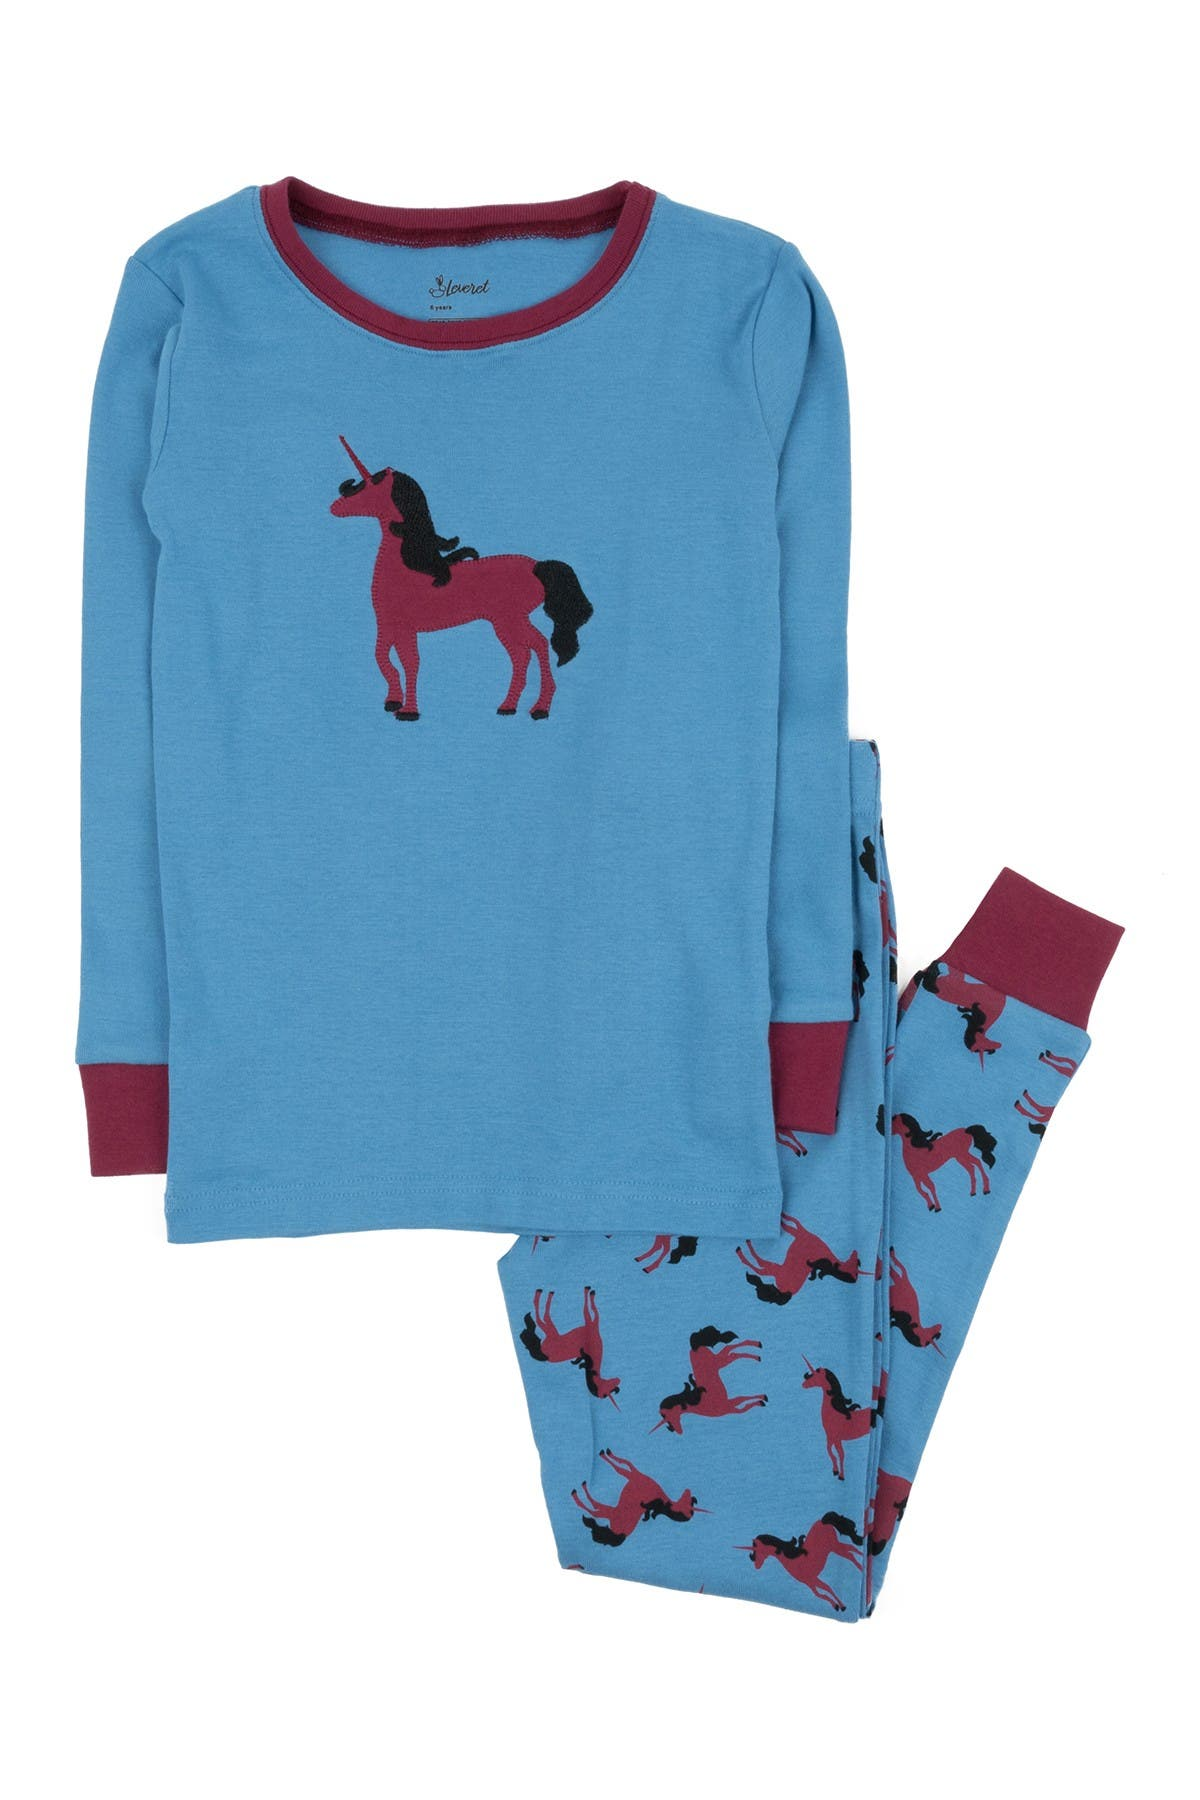 Image of Leveret Blue Unicorn Pajama